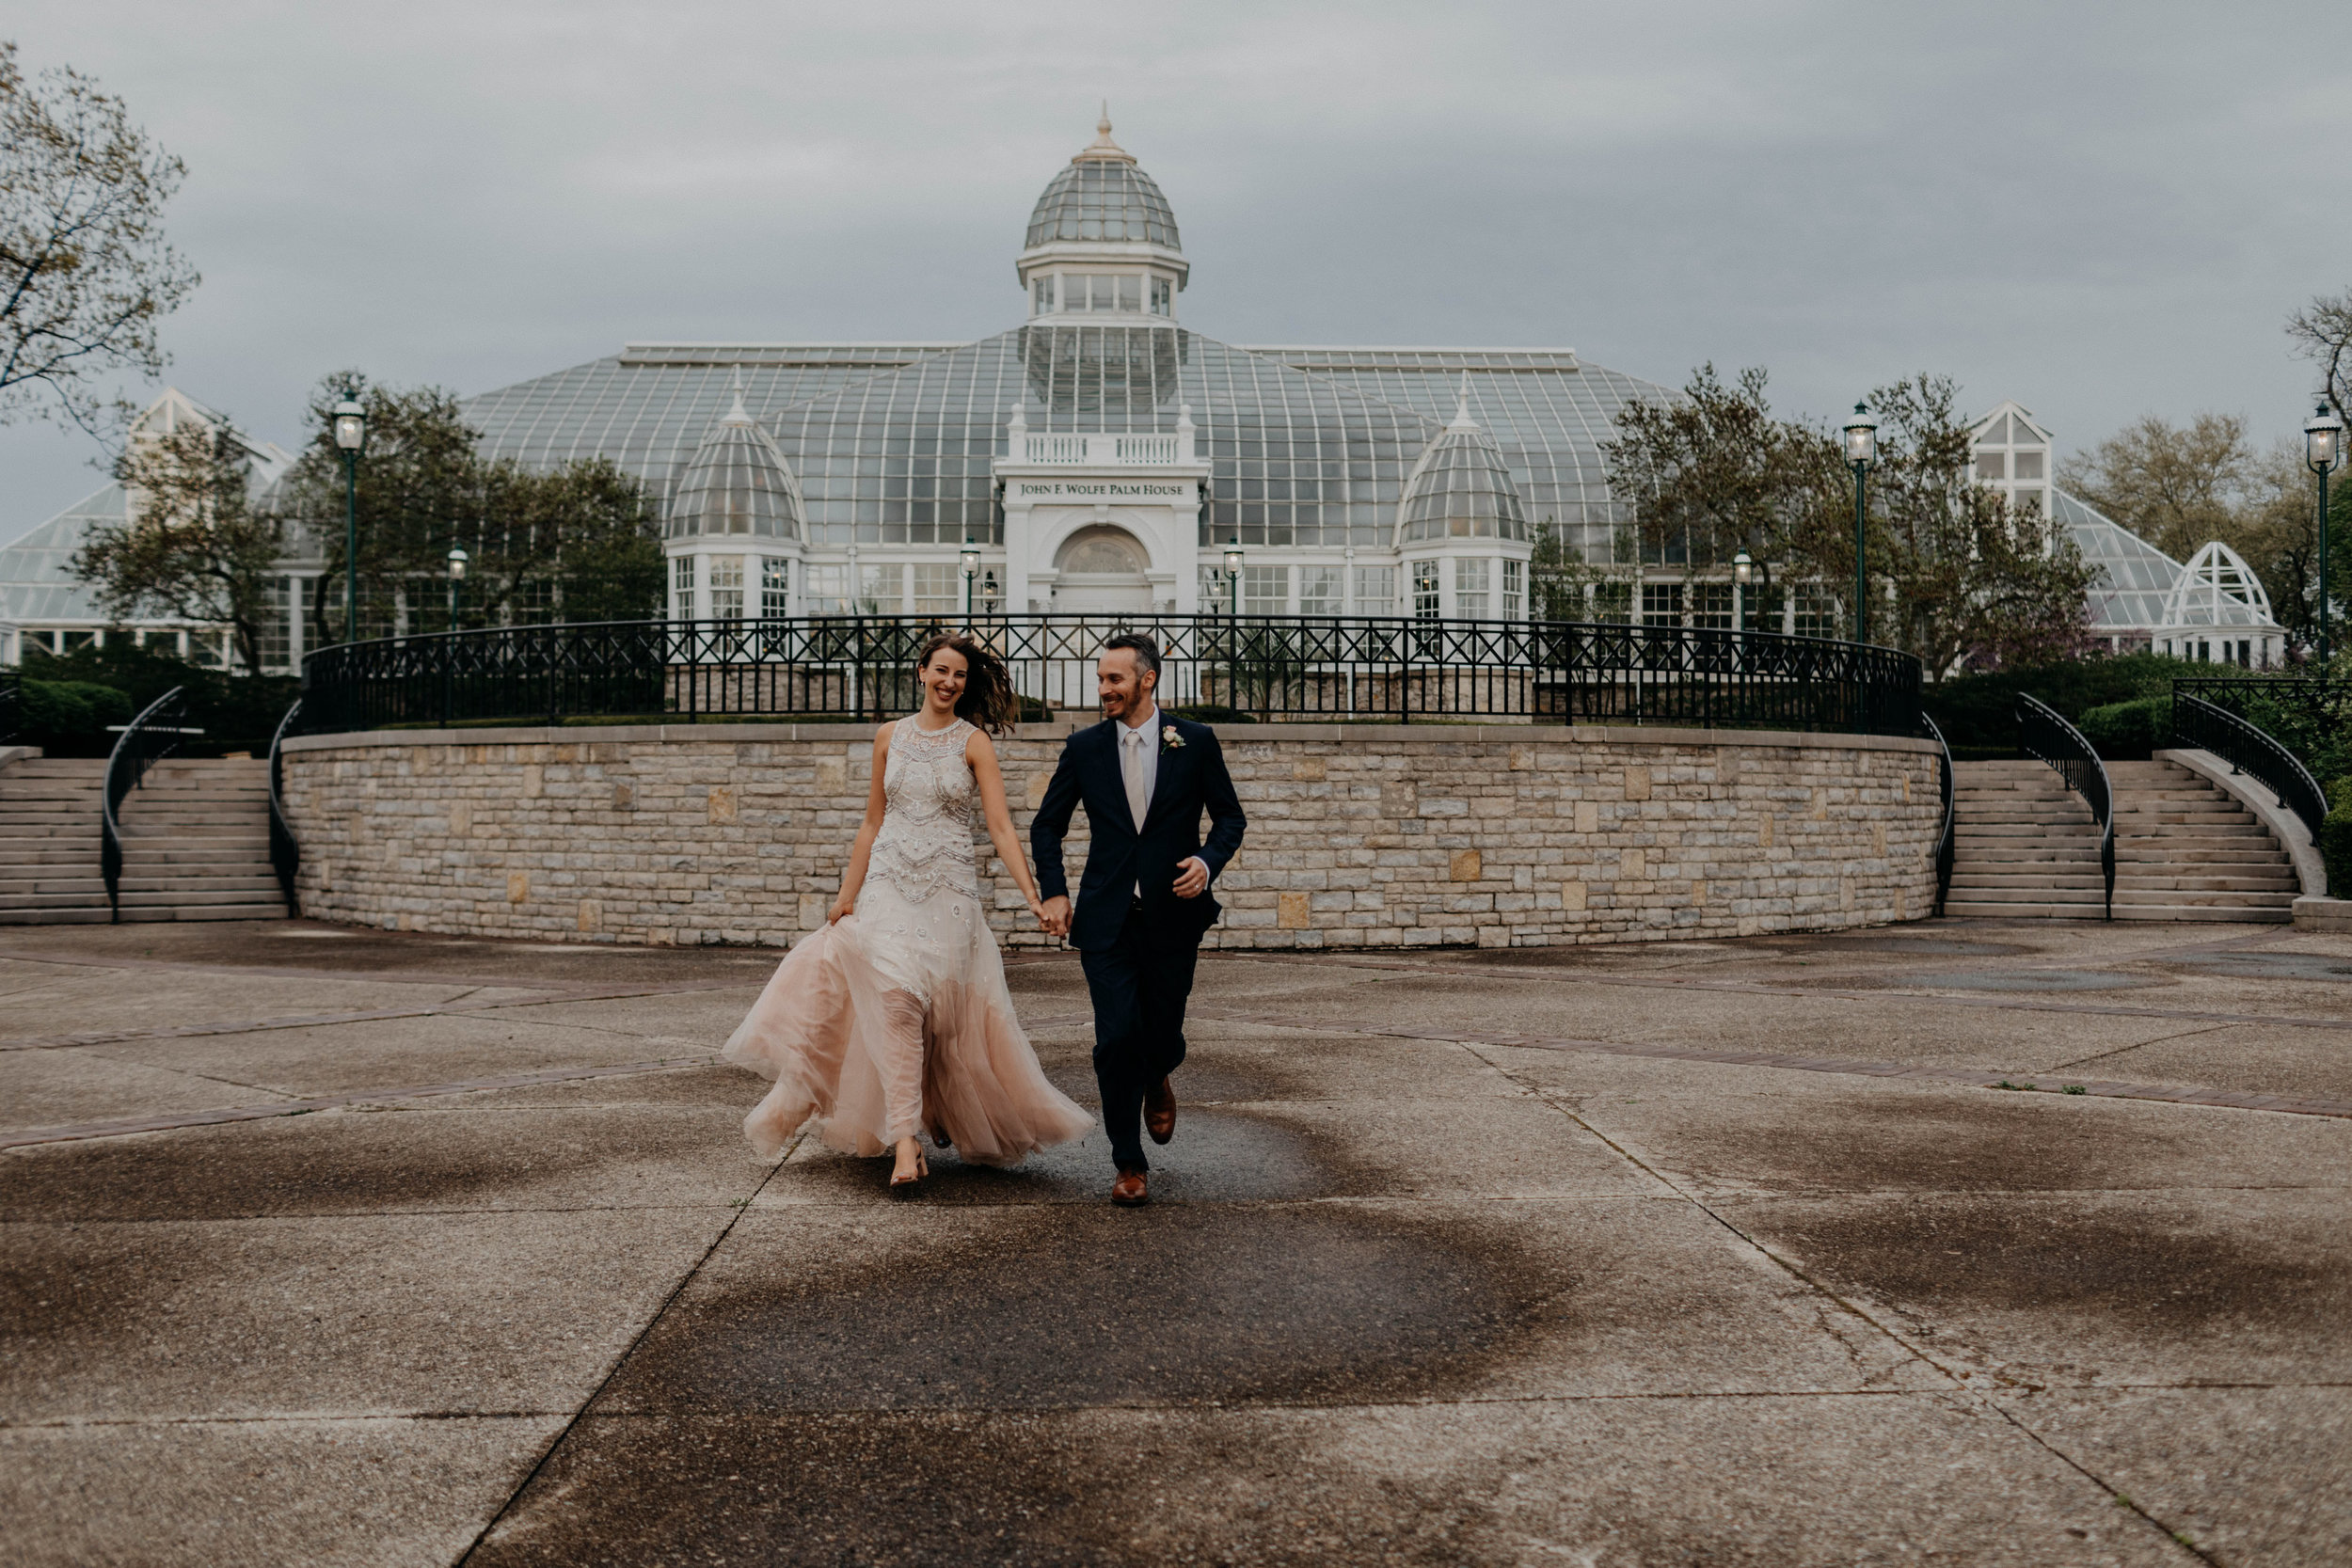 franklin park conservatory wedding columbus ohio wedding photographer grace e jones photography87.jpg